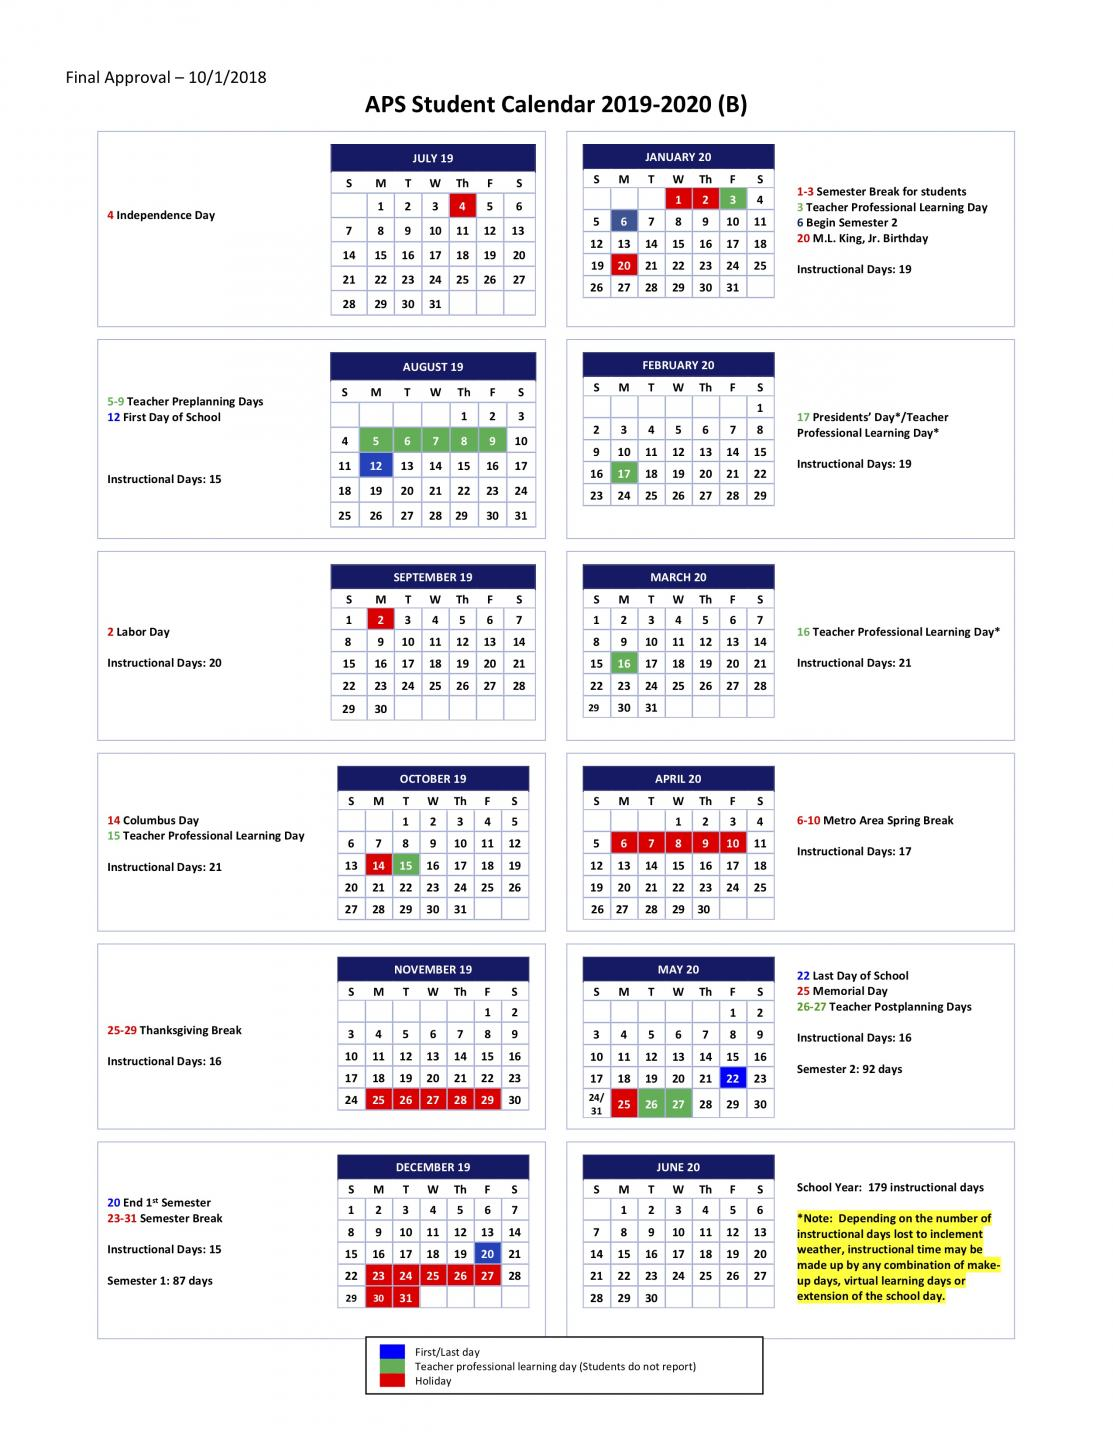 Chatham county school calendar 2020 2020 | Board Approves SCCPSS